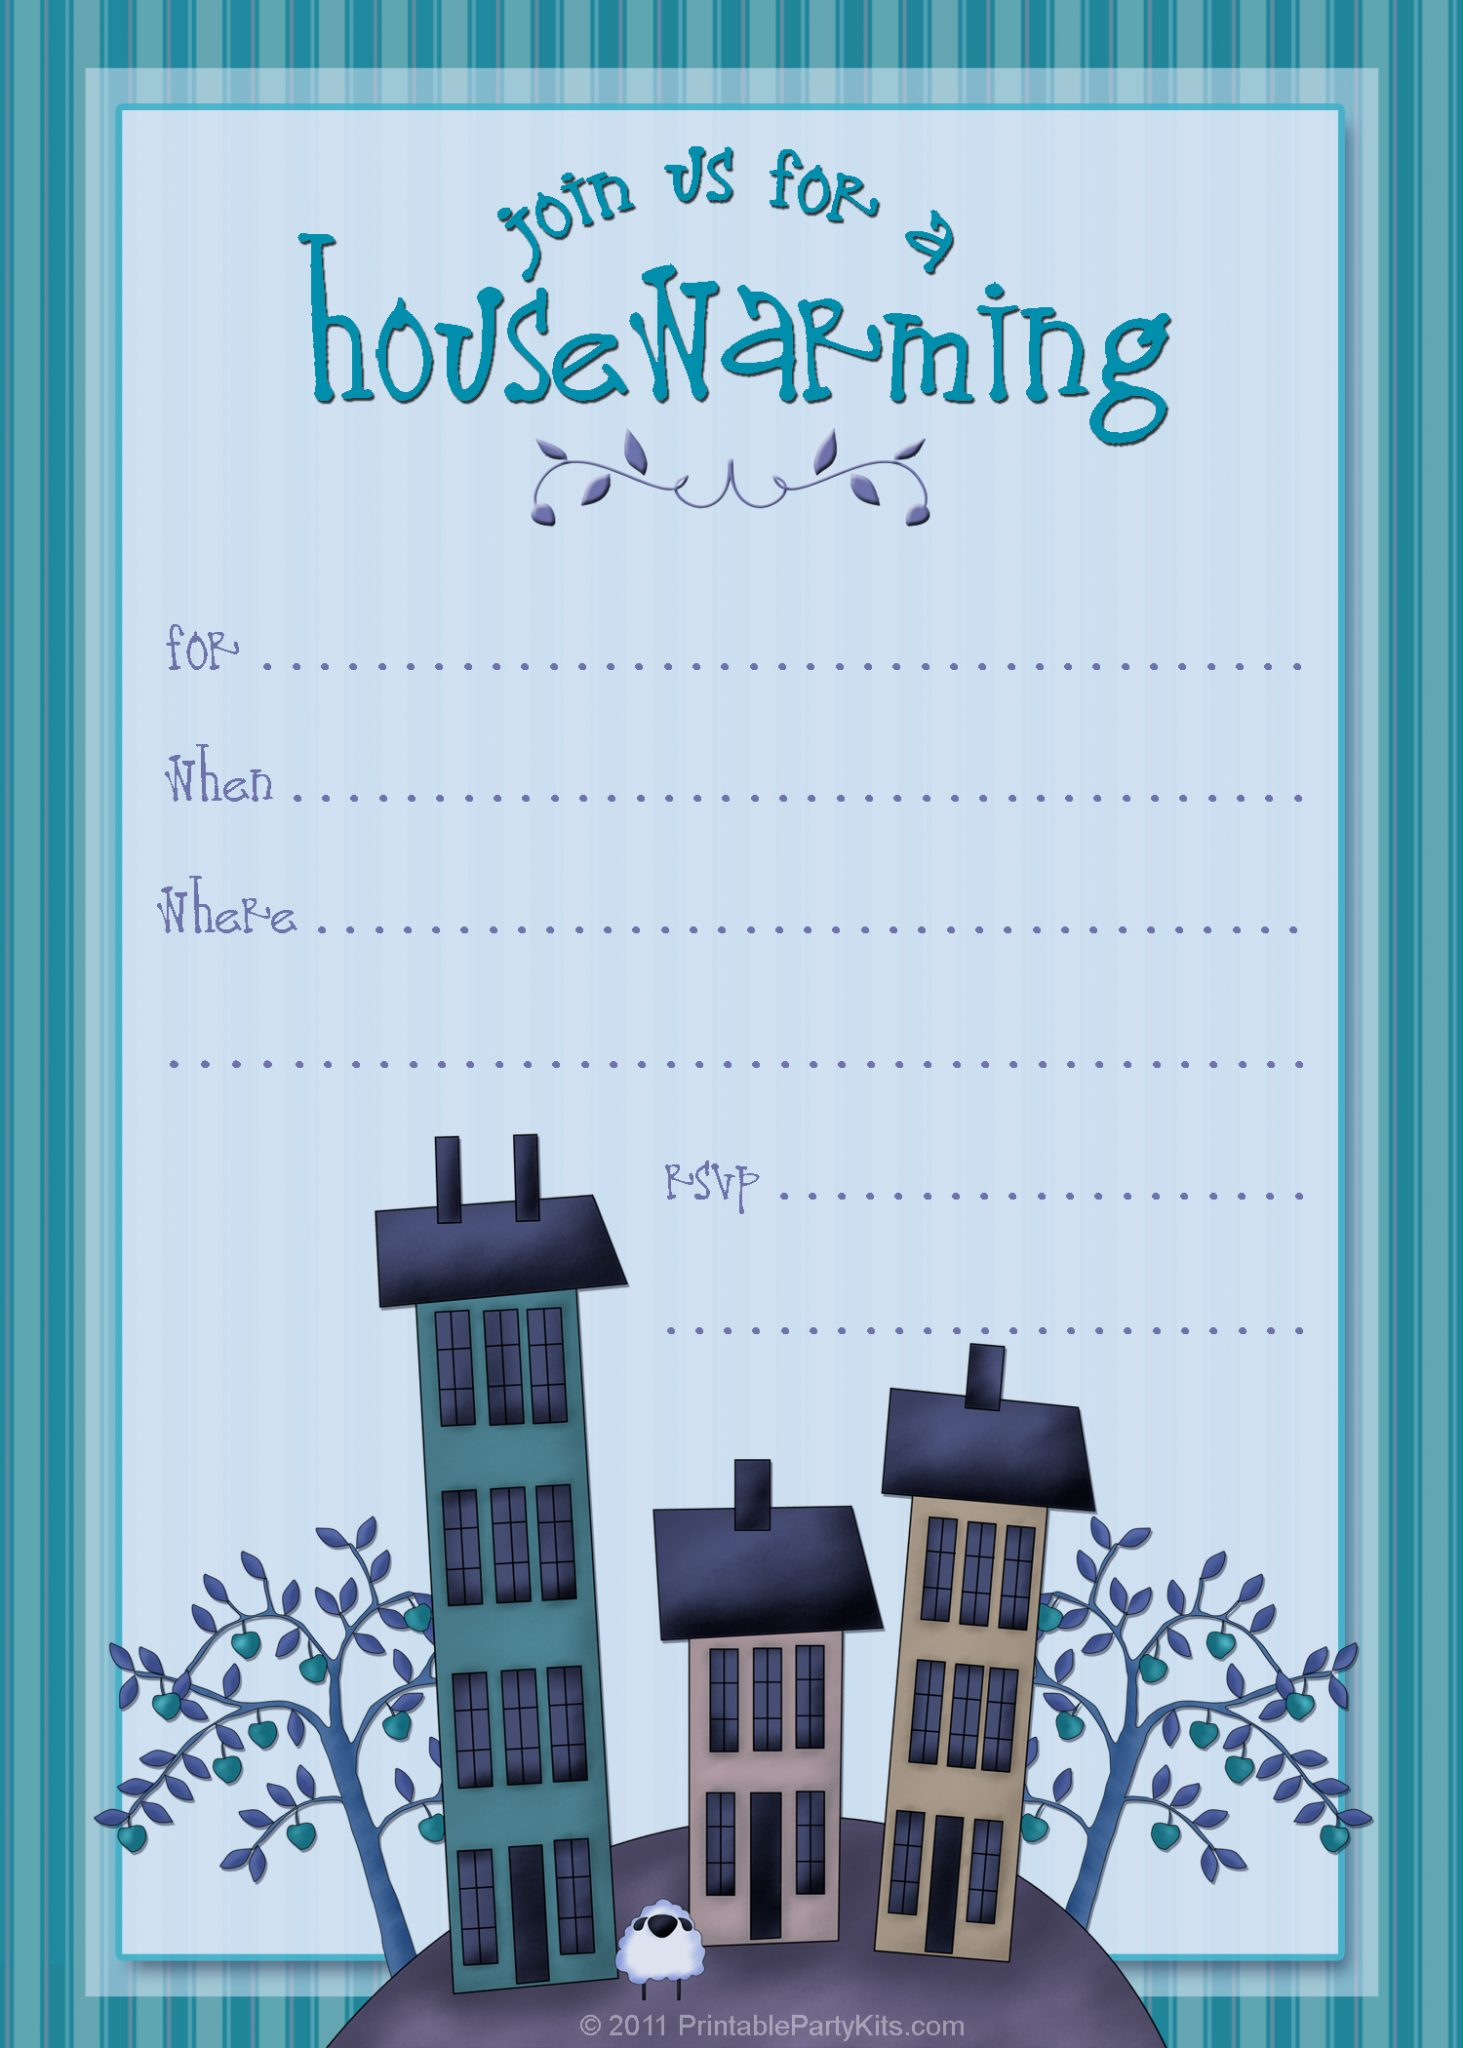 free printable housewarming party invitations printable party kits. Black Bedroom Furniture Sets. Home Design Ideas